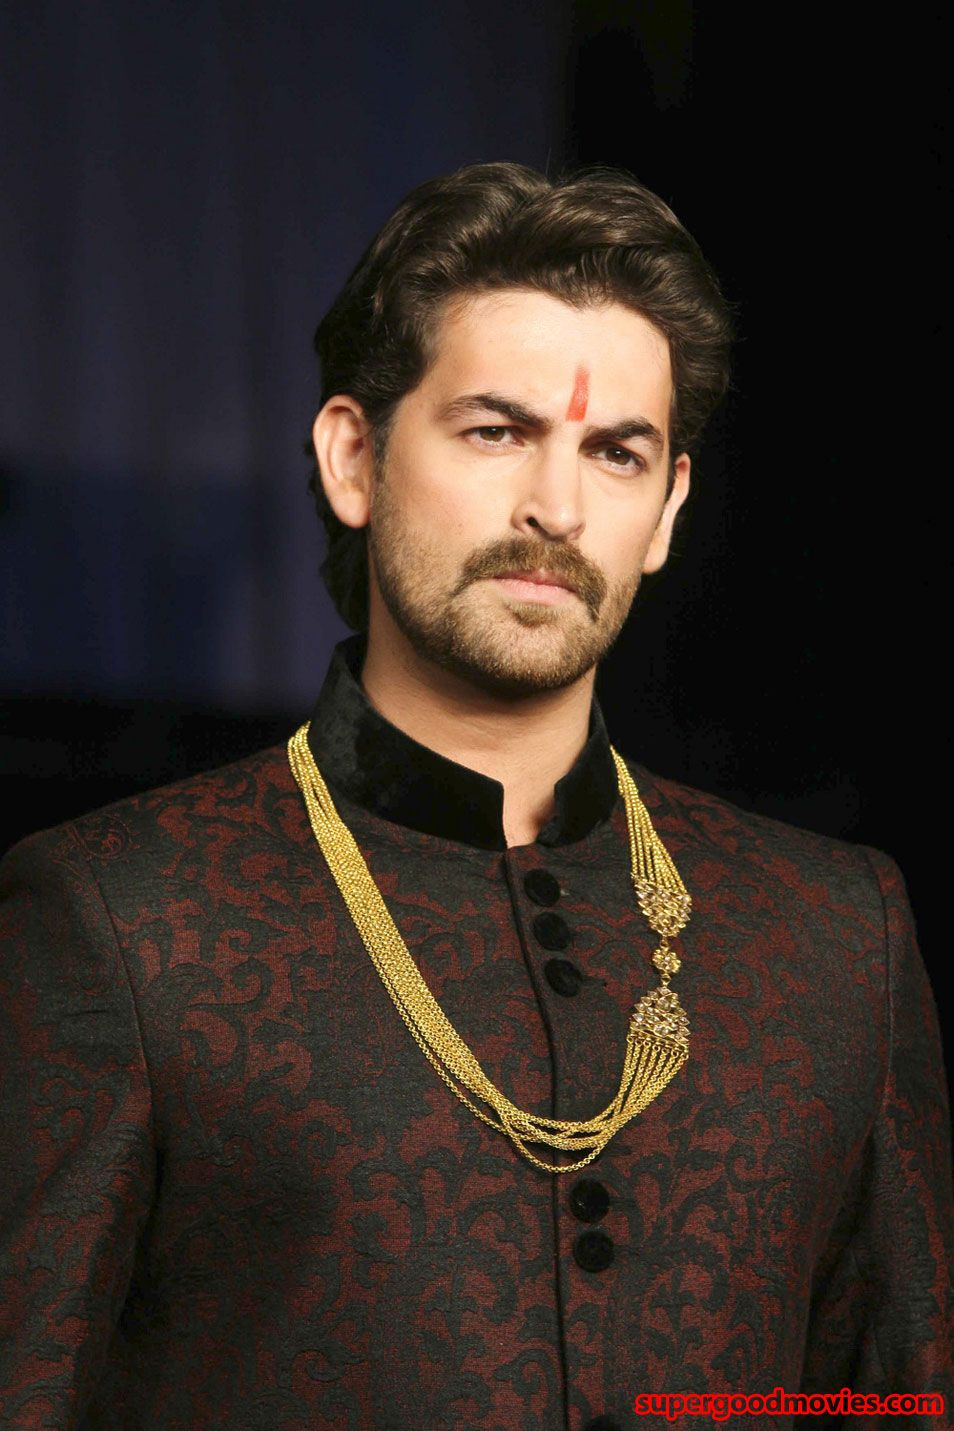 neil nitin mukesh wife picsneil nitin mukesh rukmini sahay, neil nitin mukesh father, neil nitin mukesh career, neil nitin mukesh wife pics, neil nitin mukesh wedding, neil nitin mukesh wife, neil nitin mukesh deepika padukone movie, neil nitin mukesh instagram, neil nitin mukesh hit songs, neil nitin mukesh mother name, neil nitin mukesh wedding pics, neil nitin mukesh fiance, neil nitin mukesh biography, neil nitin mukesh game of thrones, neil nitin mukesh height, neil nitin mukesh movies list, neil nitin mukesh songs, neil nitin mukesh twitter, neil nitin mukesh in kaththi, neil nitin mukesh wikipedia